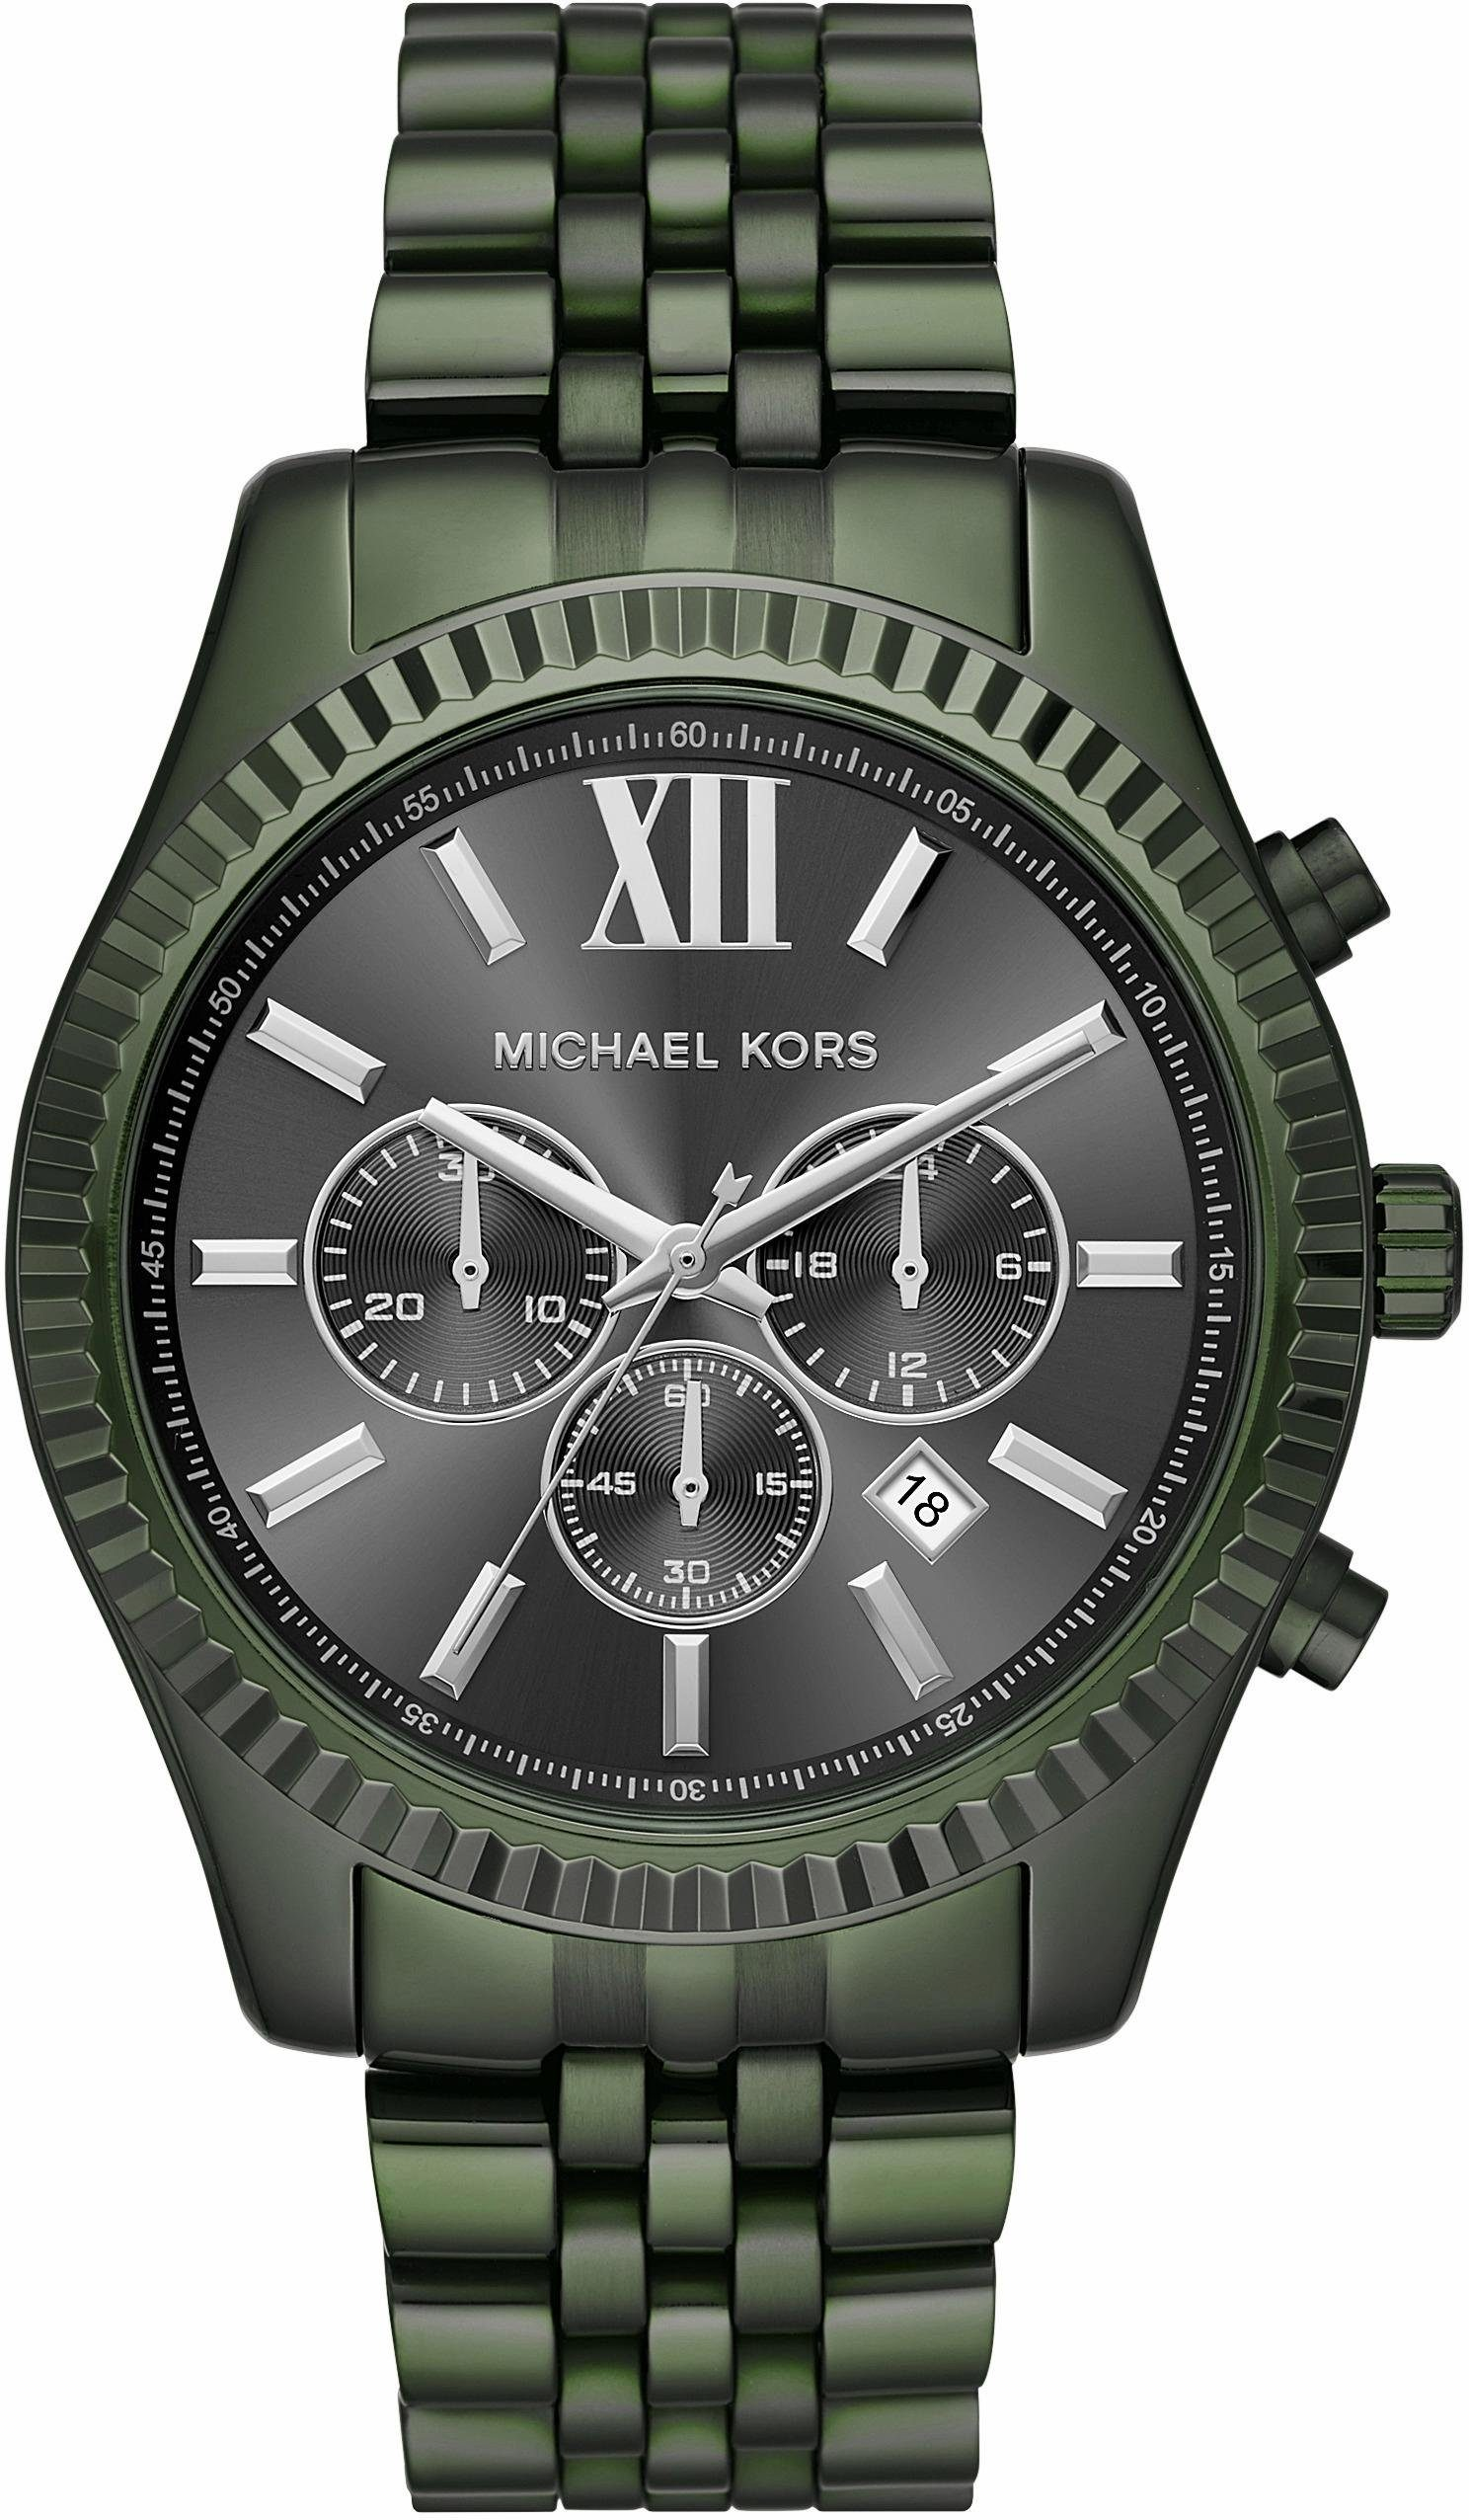 MICHAEL KORS Chronograph »LEXINGTON, MK8604«